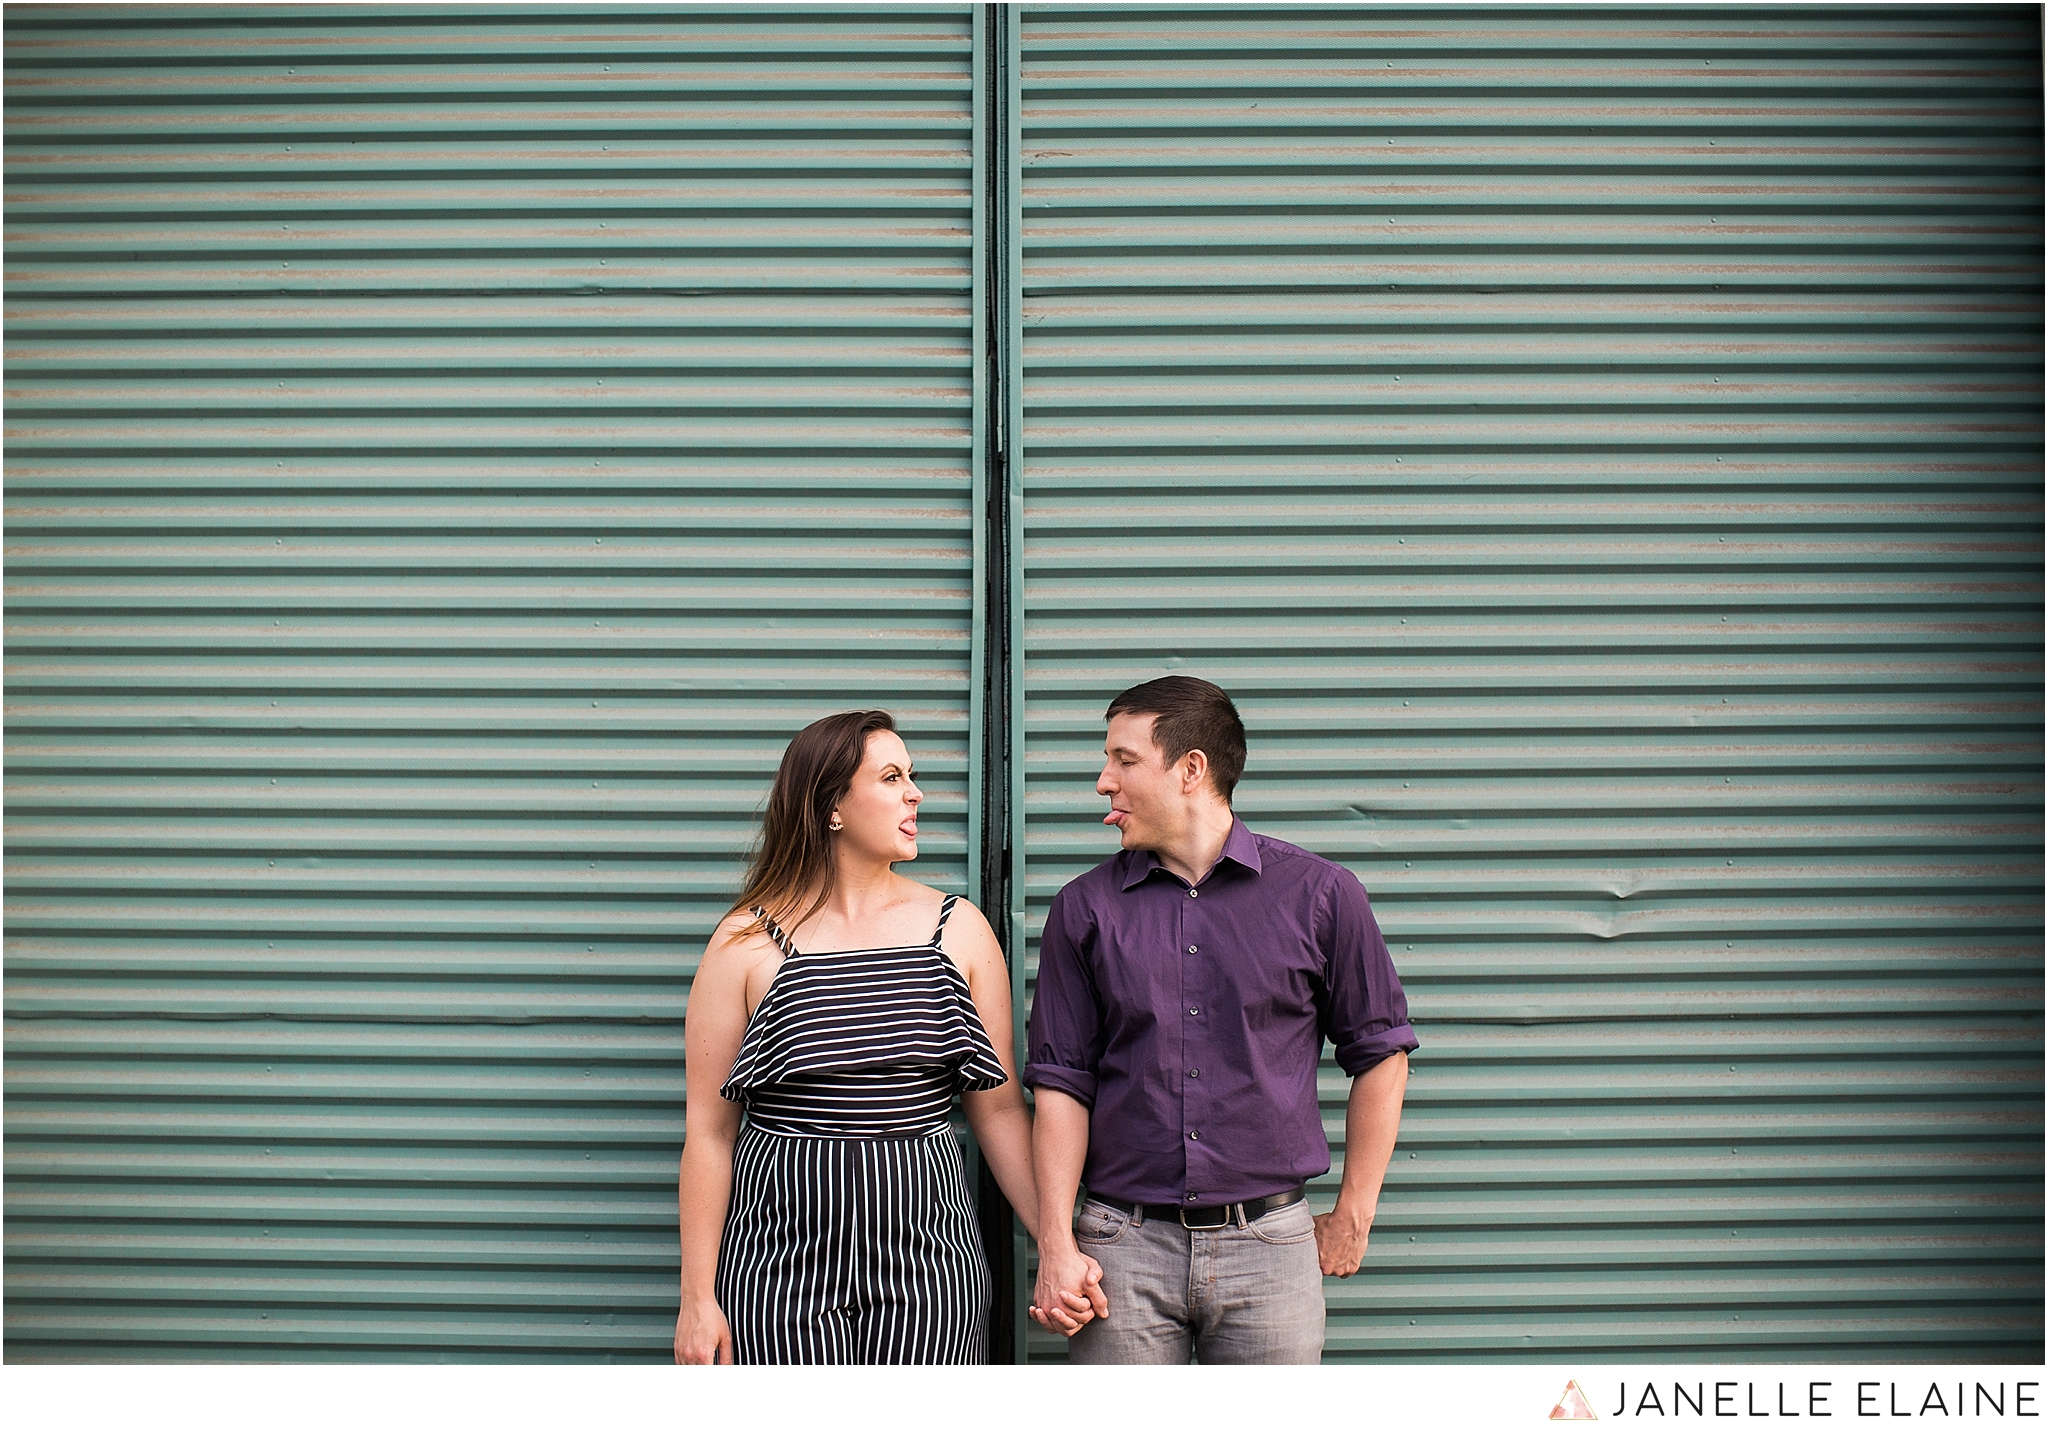 karen ethan-georgetown engagement photos-seattle-janelle elaine photography-191.jpg